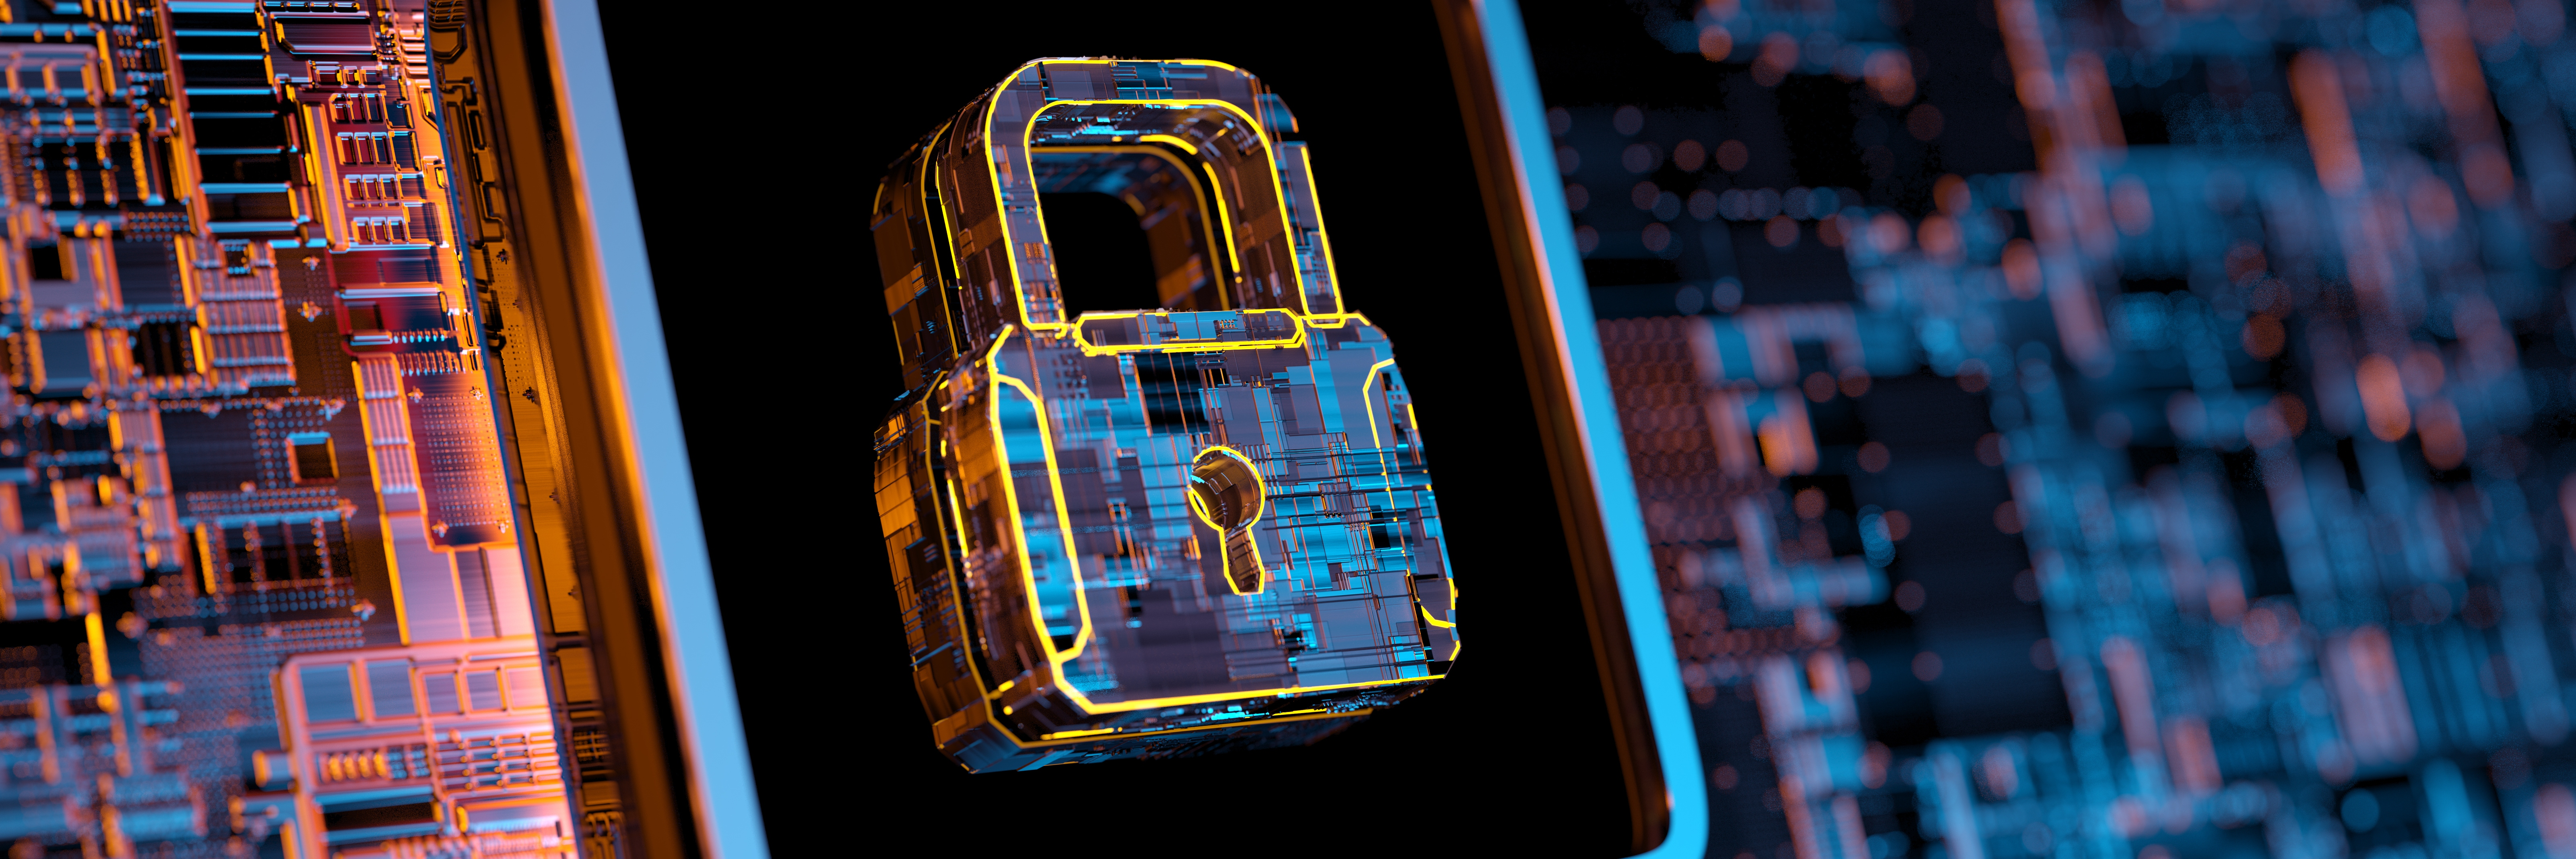 Digital illustration of cyber security lock